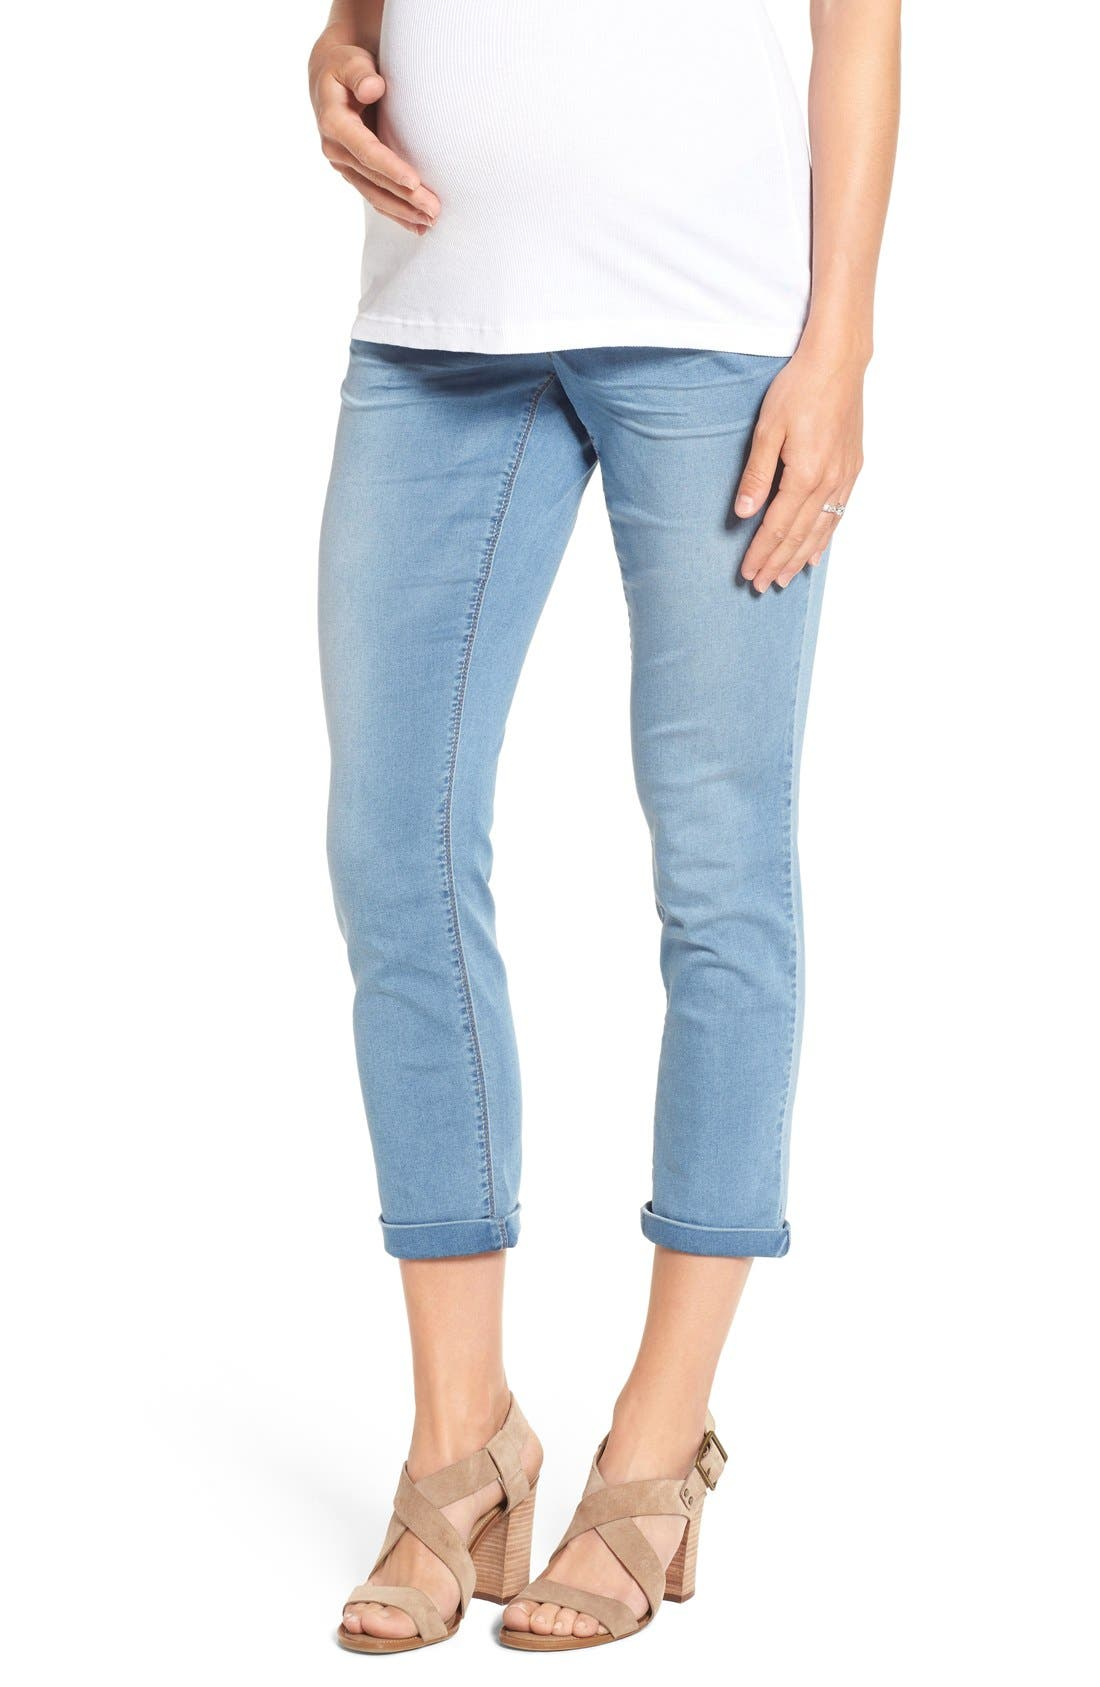 'Ankle Biter' Over the Bump Rolled Cuff Maternity Skinny Jeans,                             Main thumbnail 1, color,                             452